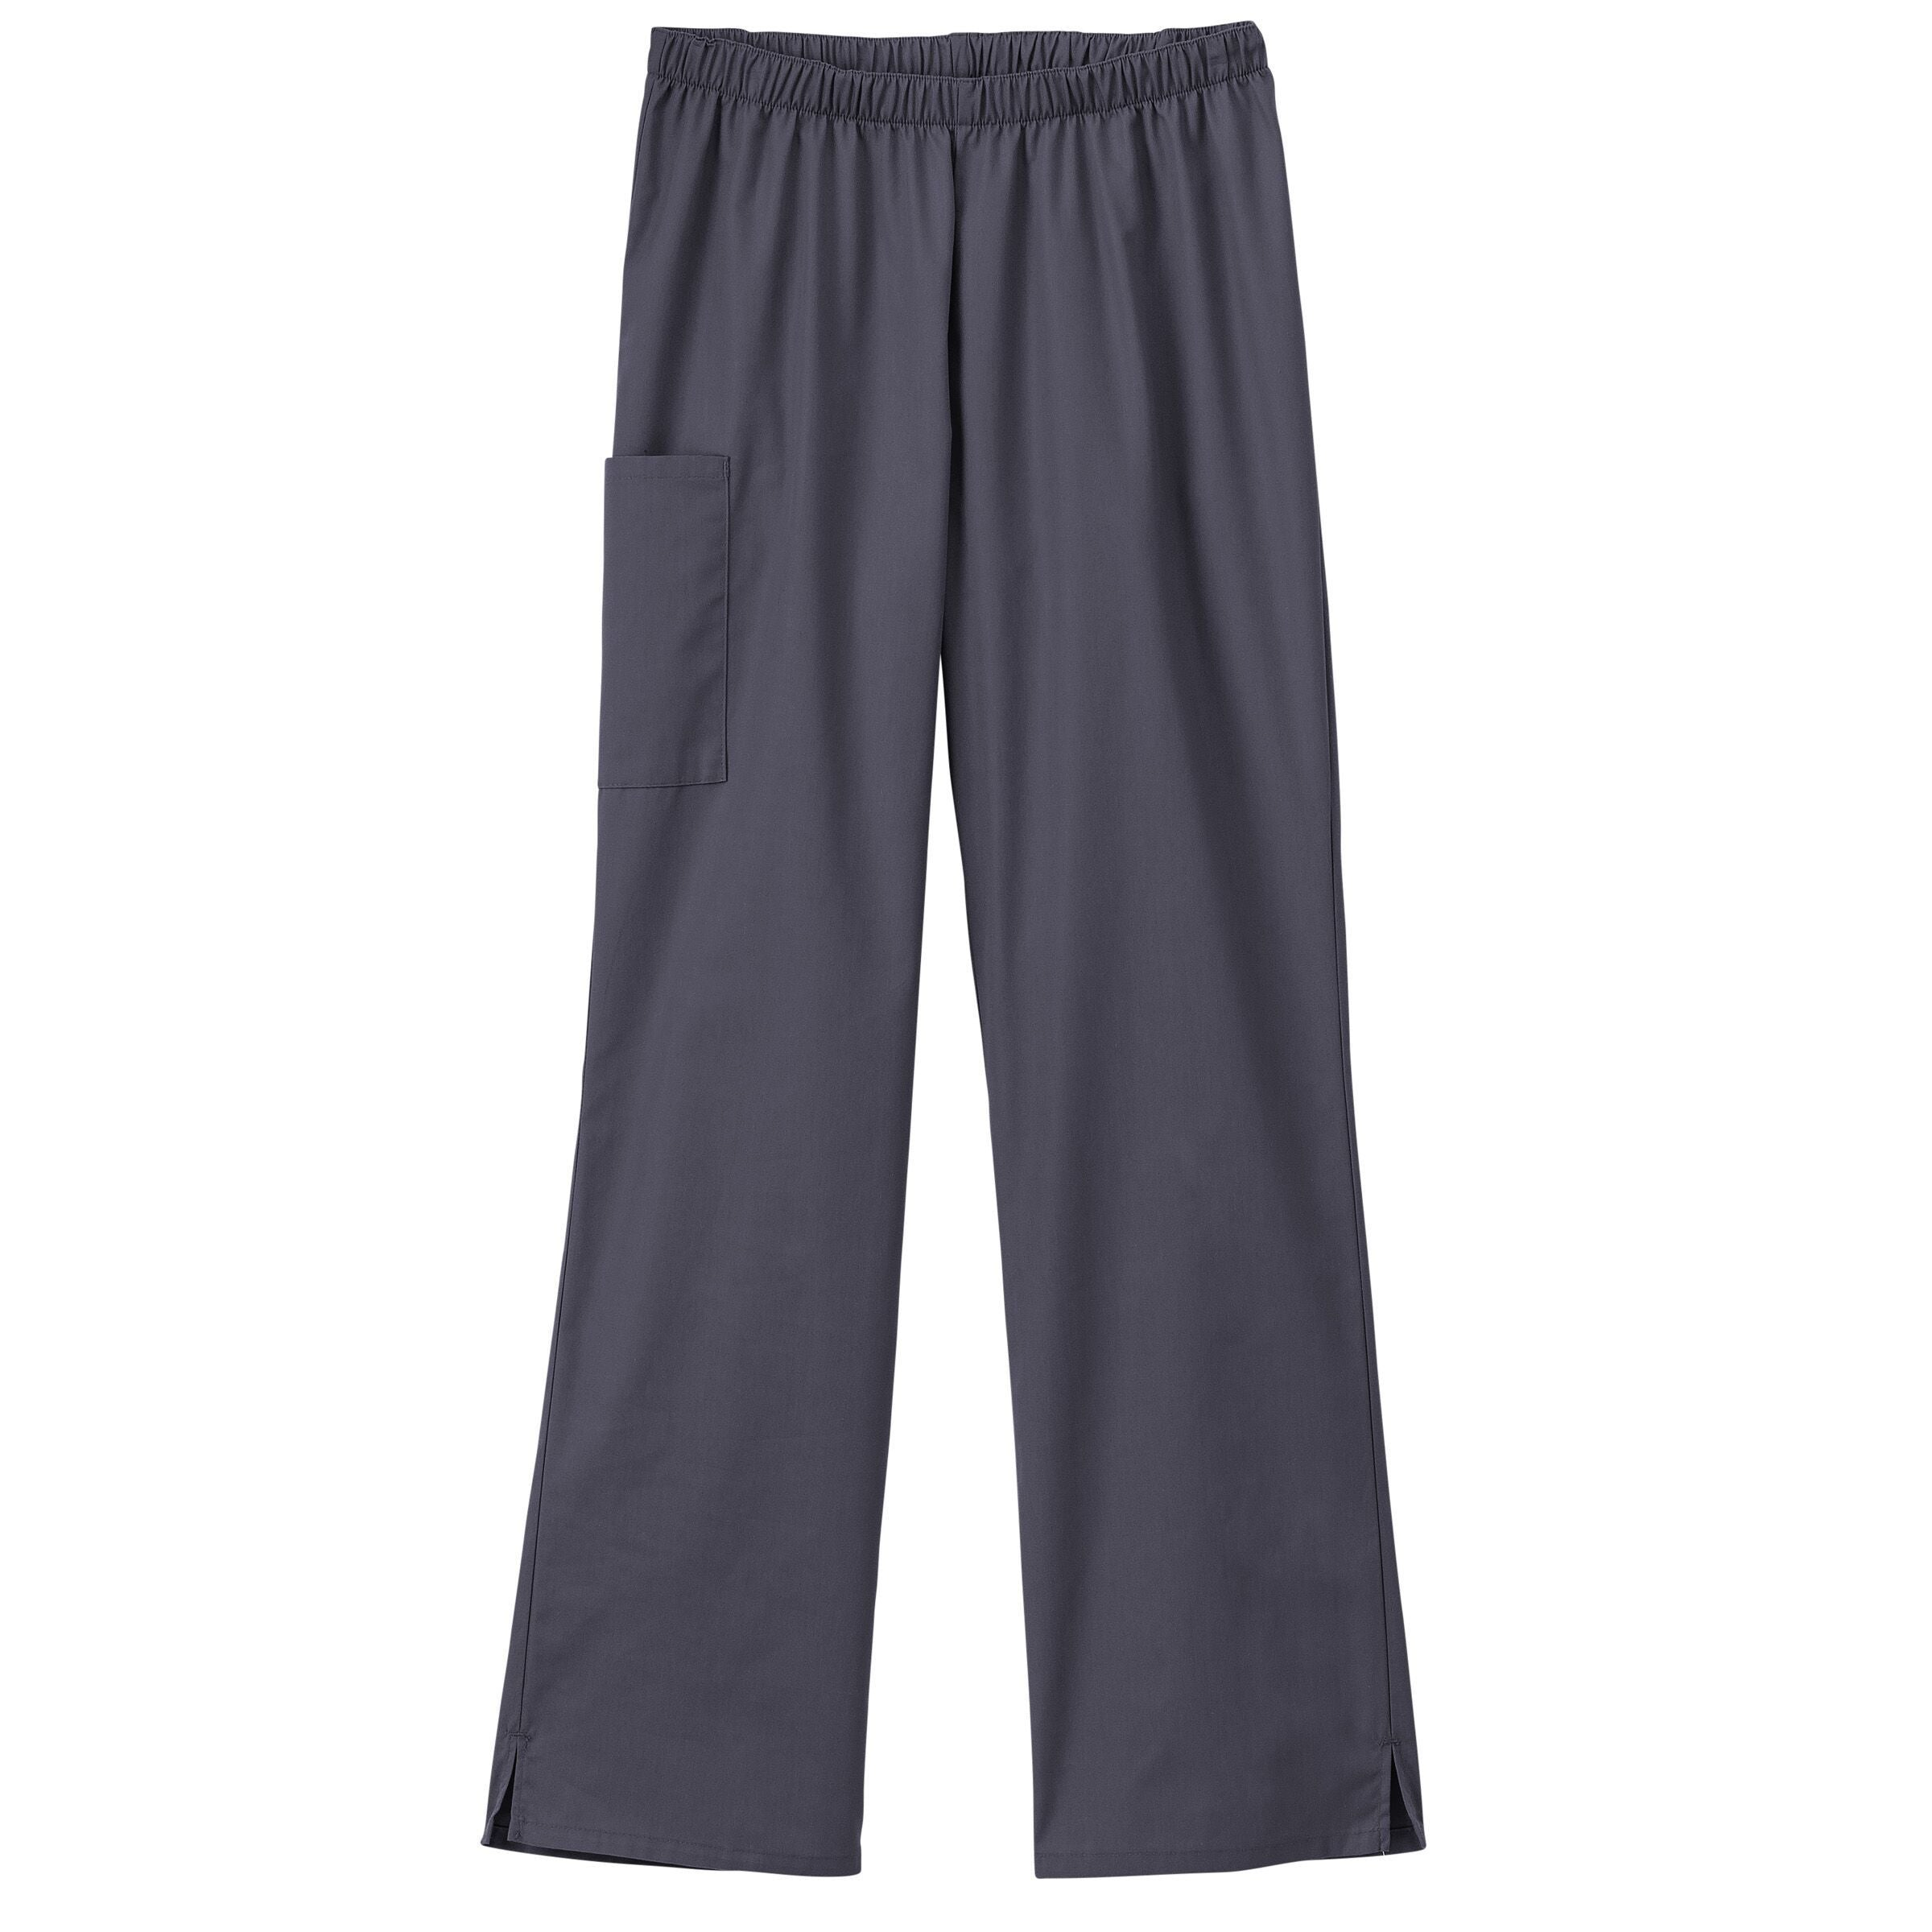 Ladies Cargo Pant Tall Full Elastic Fundamentals